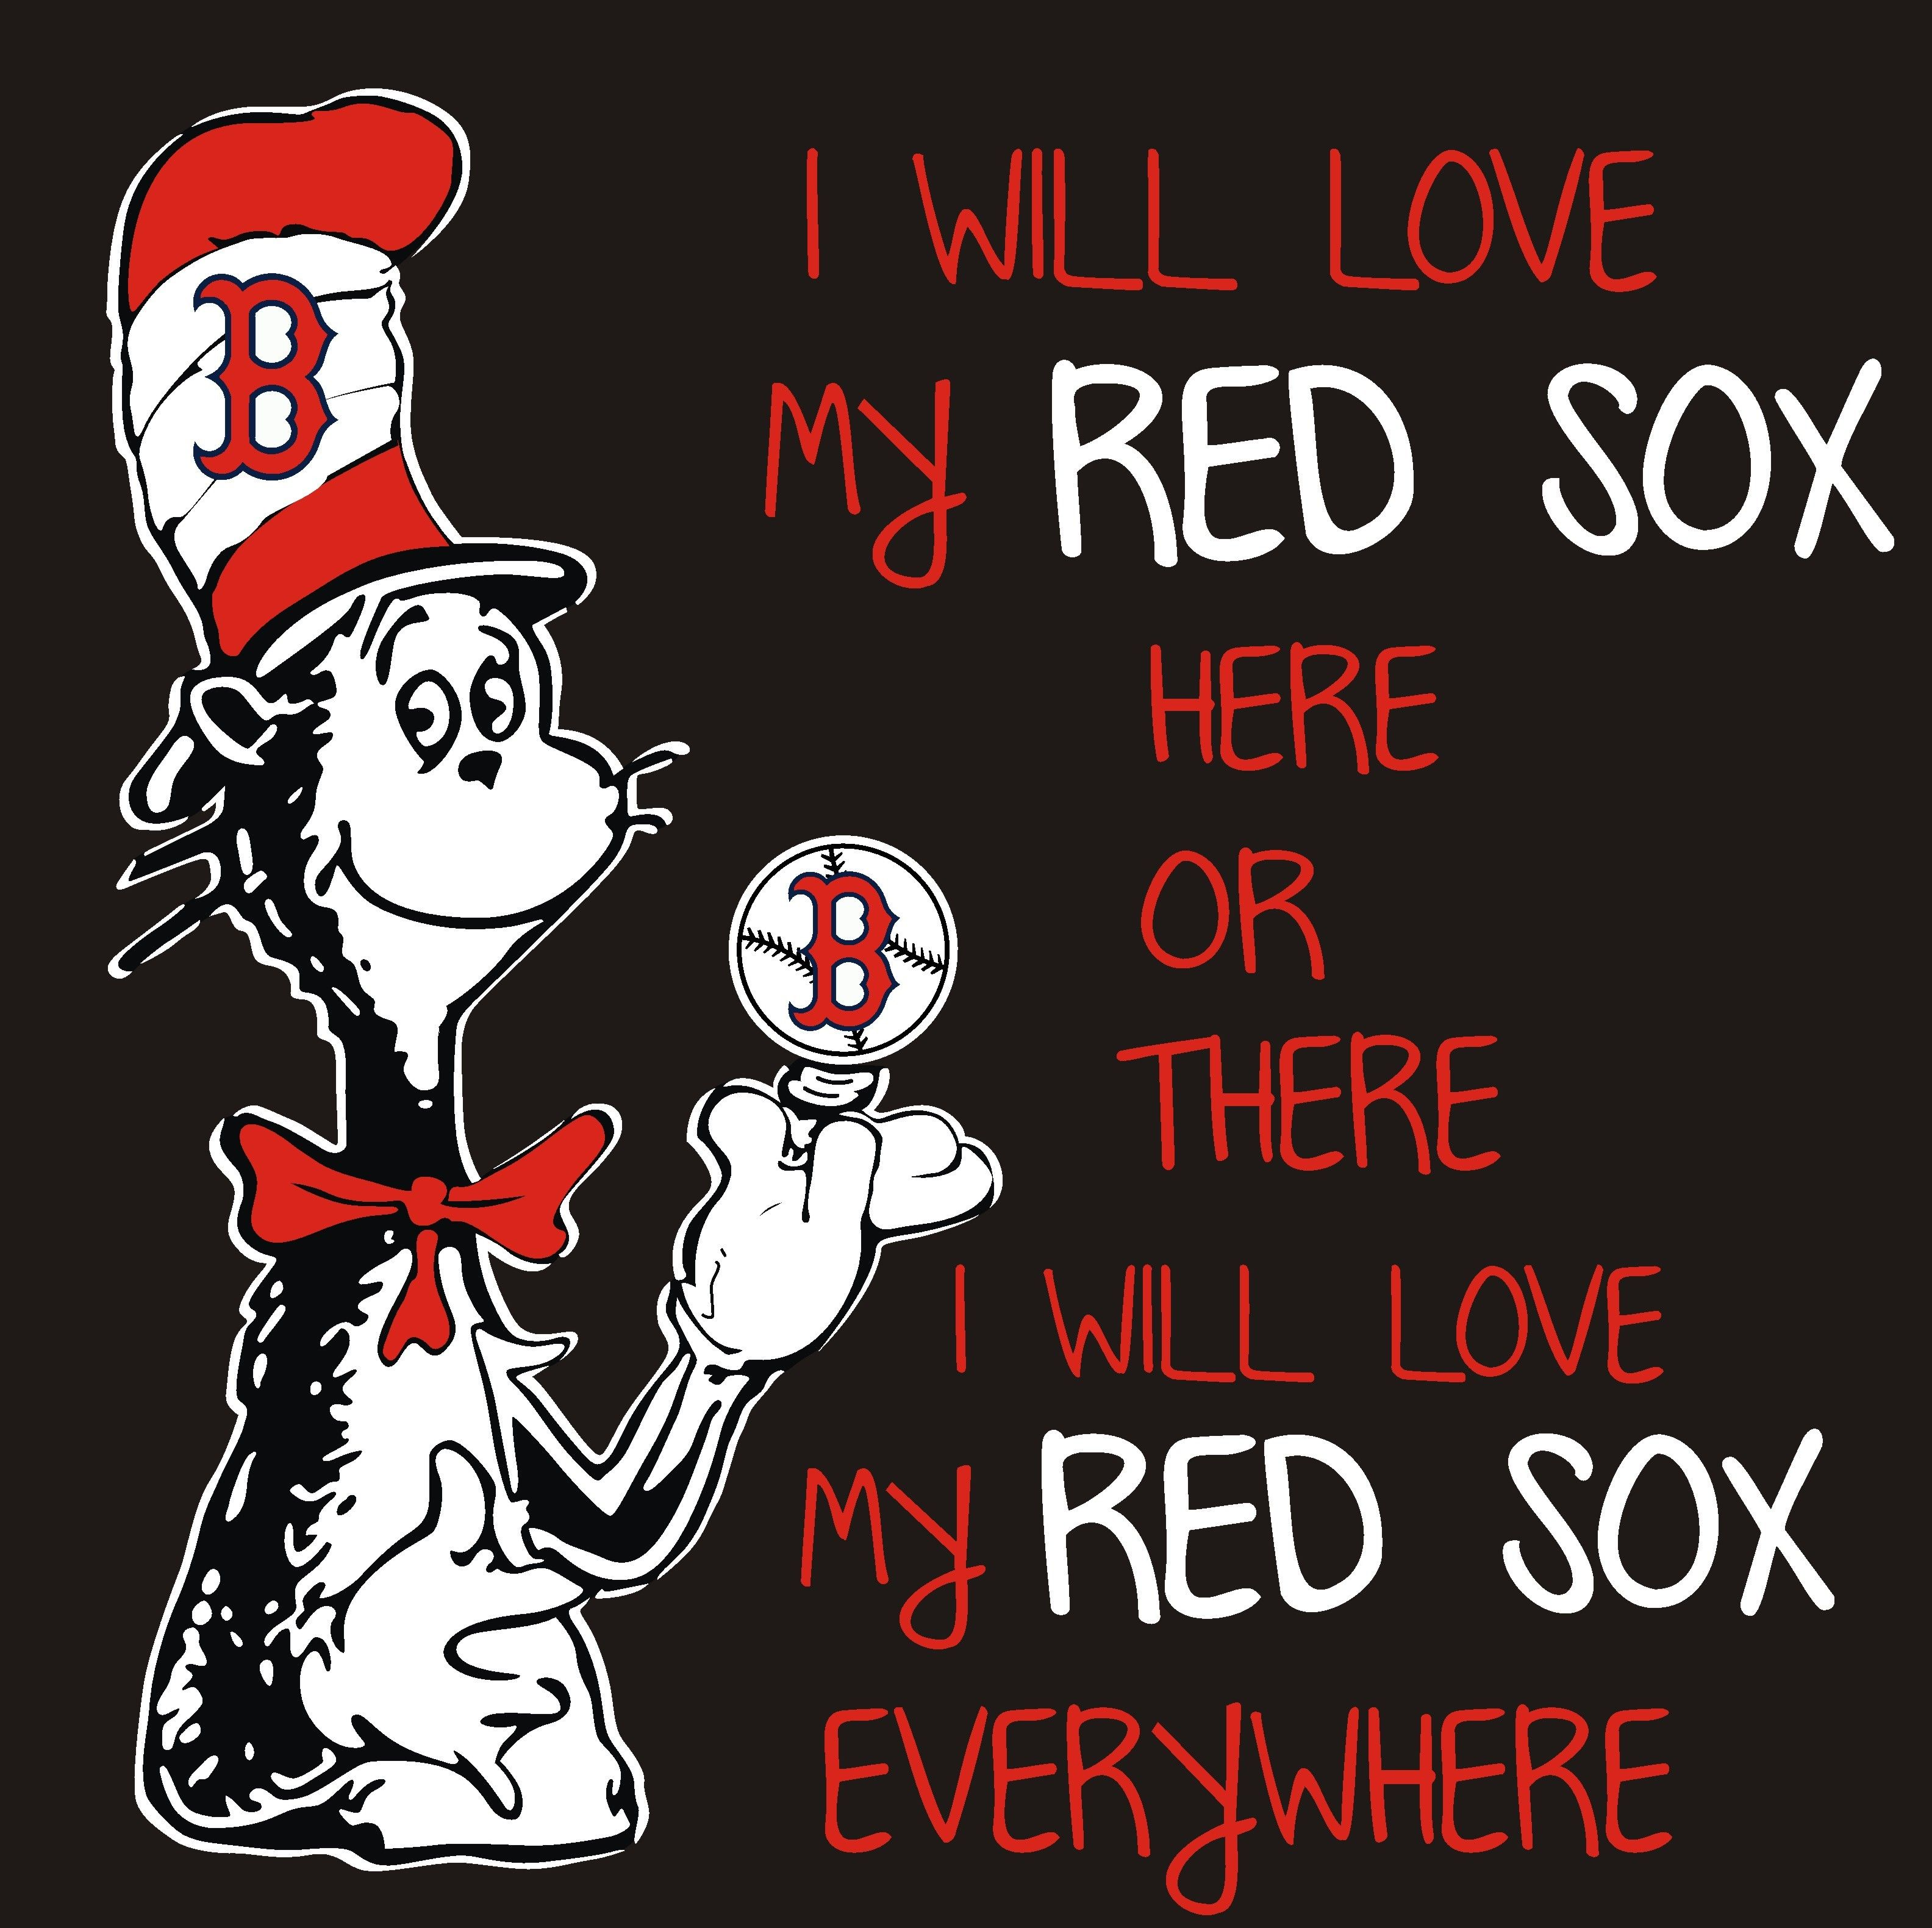 I Will Love My Red Sox Here Or There I Will Love My Red Sox Everywhere Boston Red Sox Baseball Cat In The Hat Atlanta Braves Braves Atlanta Braves Baseball